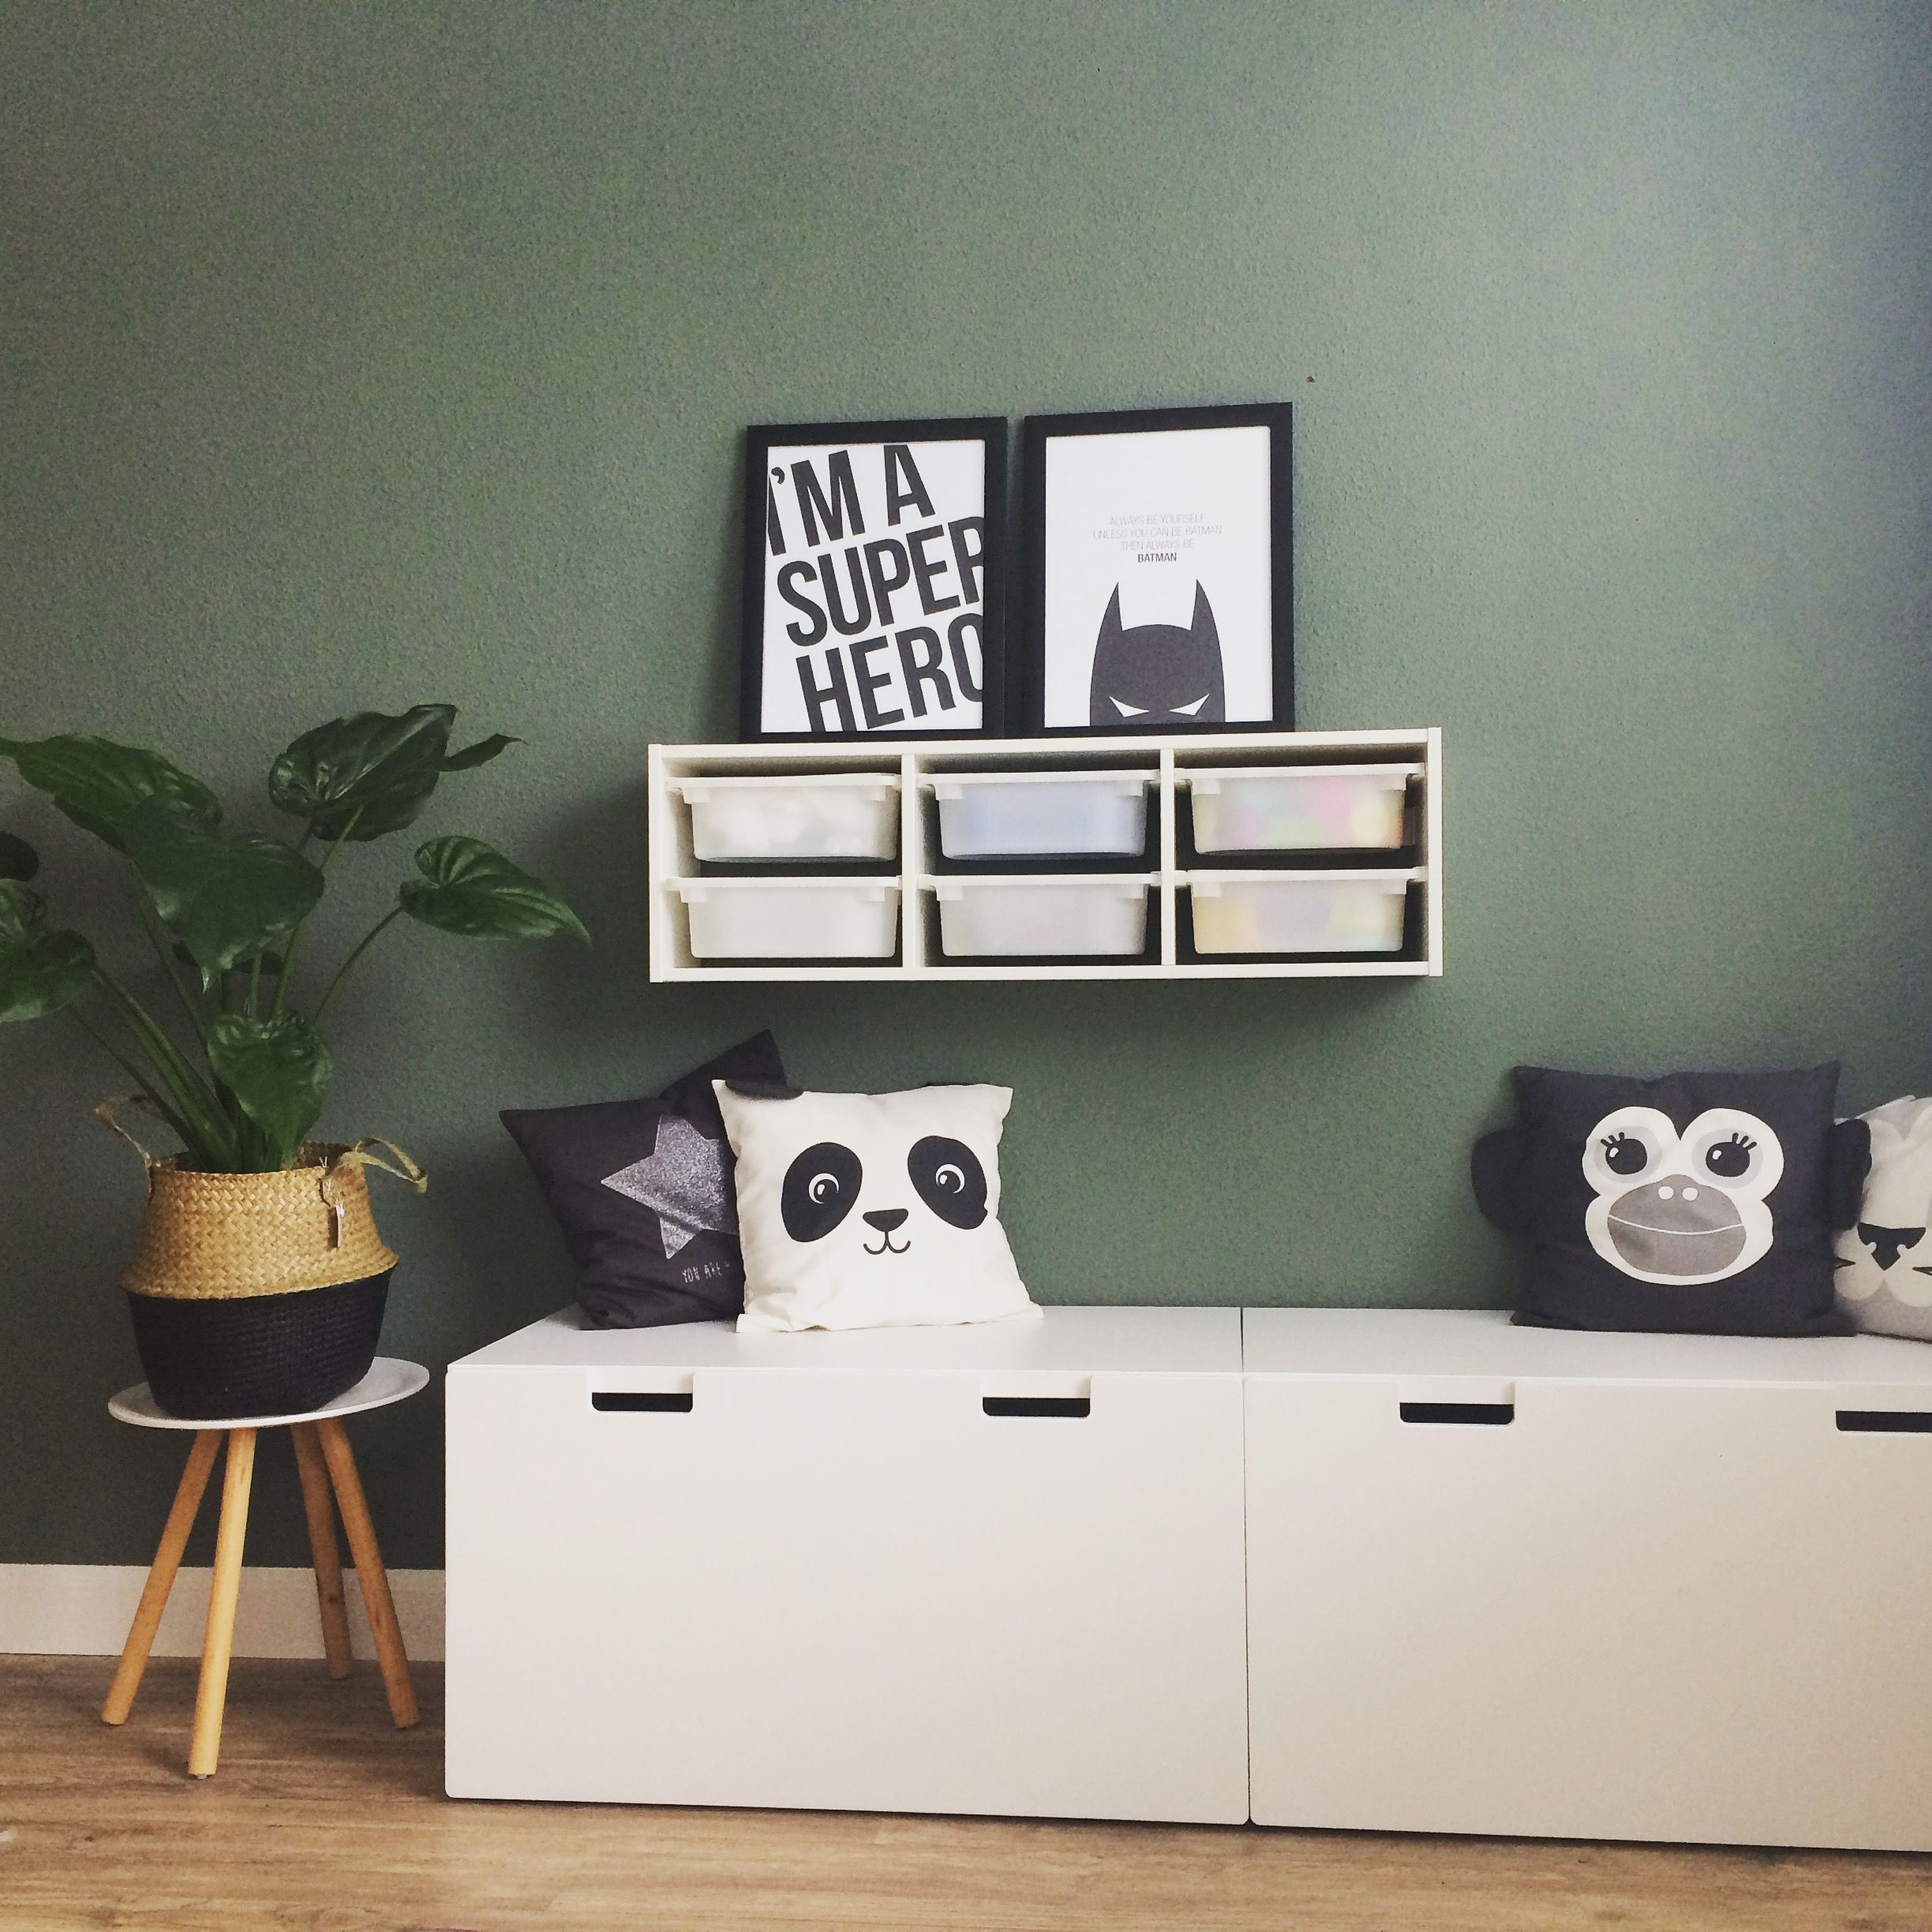 speelhoekje met ikea stuva en trofast meubels kussens van h m home muur in vt wonen army green. Black Bedroom Furniture Sets. Home Design Ideas